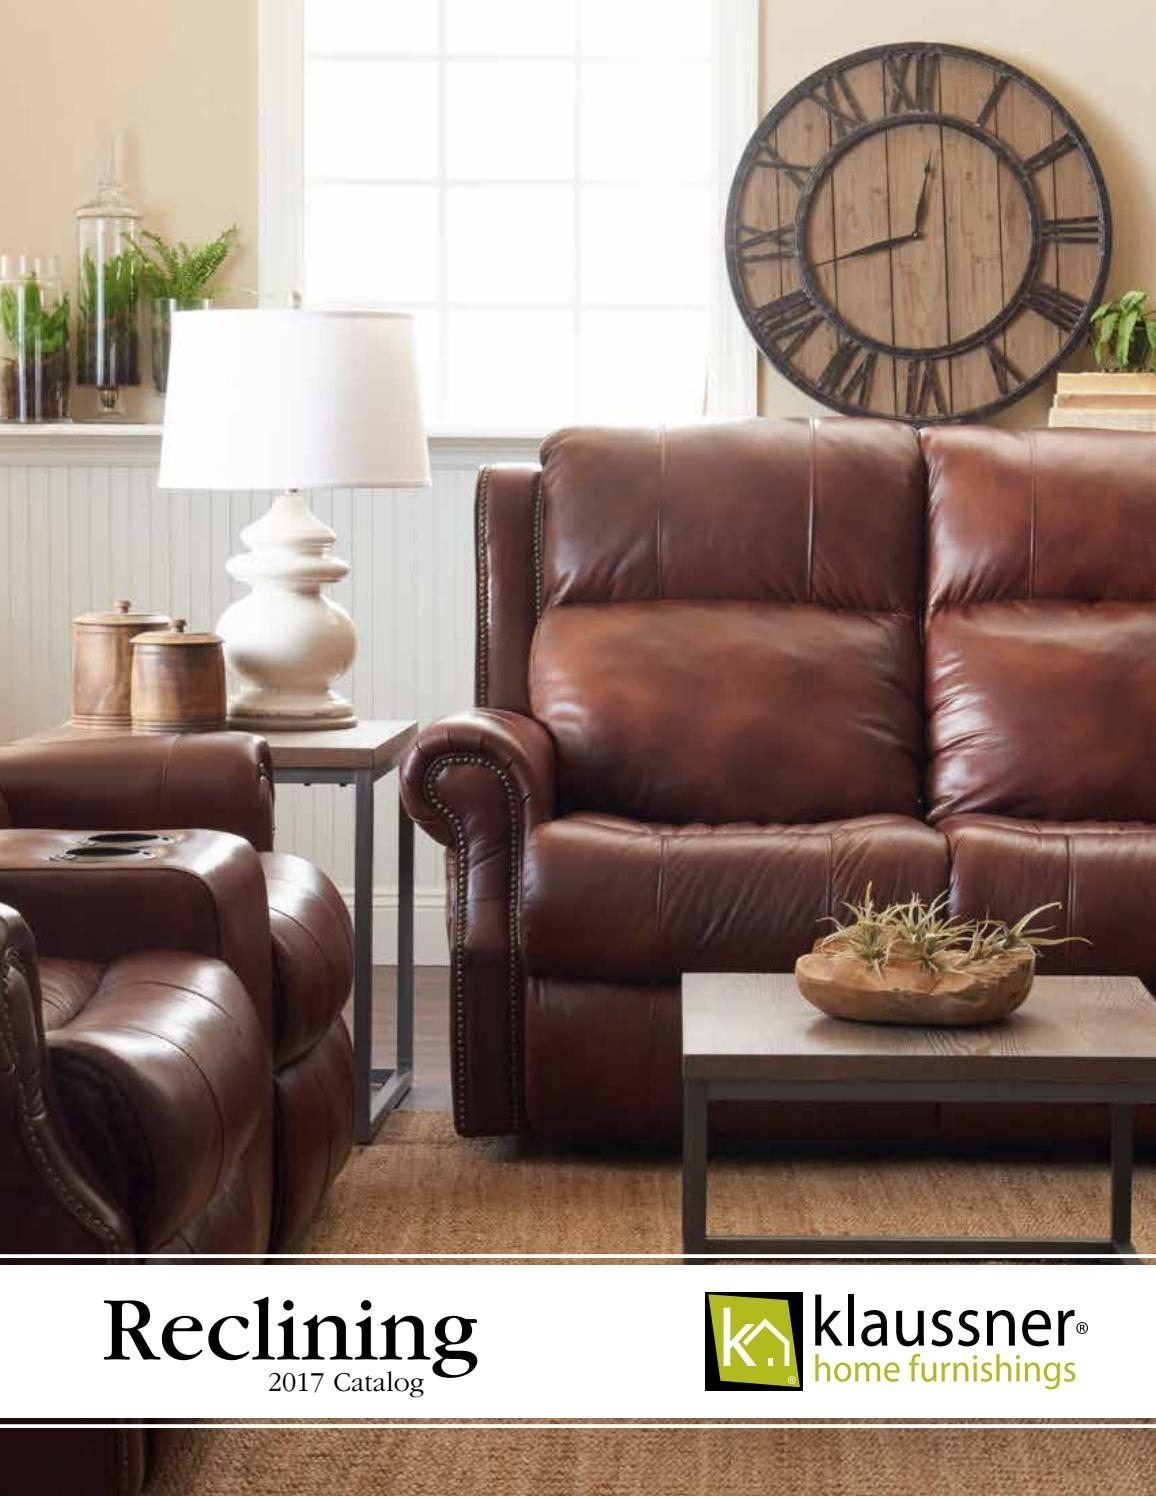 Reclining 2017 Catalog October2017Klaussner Home Furnishings - Issuu for Marcus Chocolate 6 Piece Sectionals With Power Headrest And Usb (Image 17 of 30)